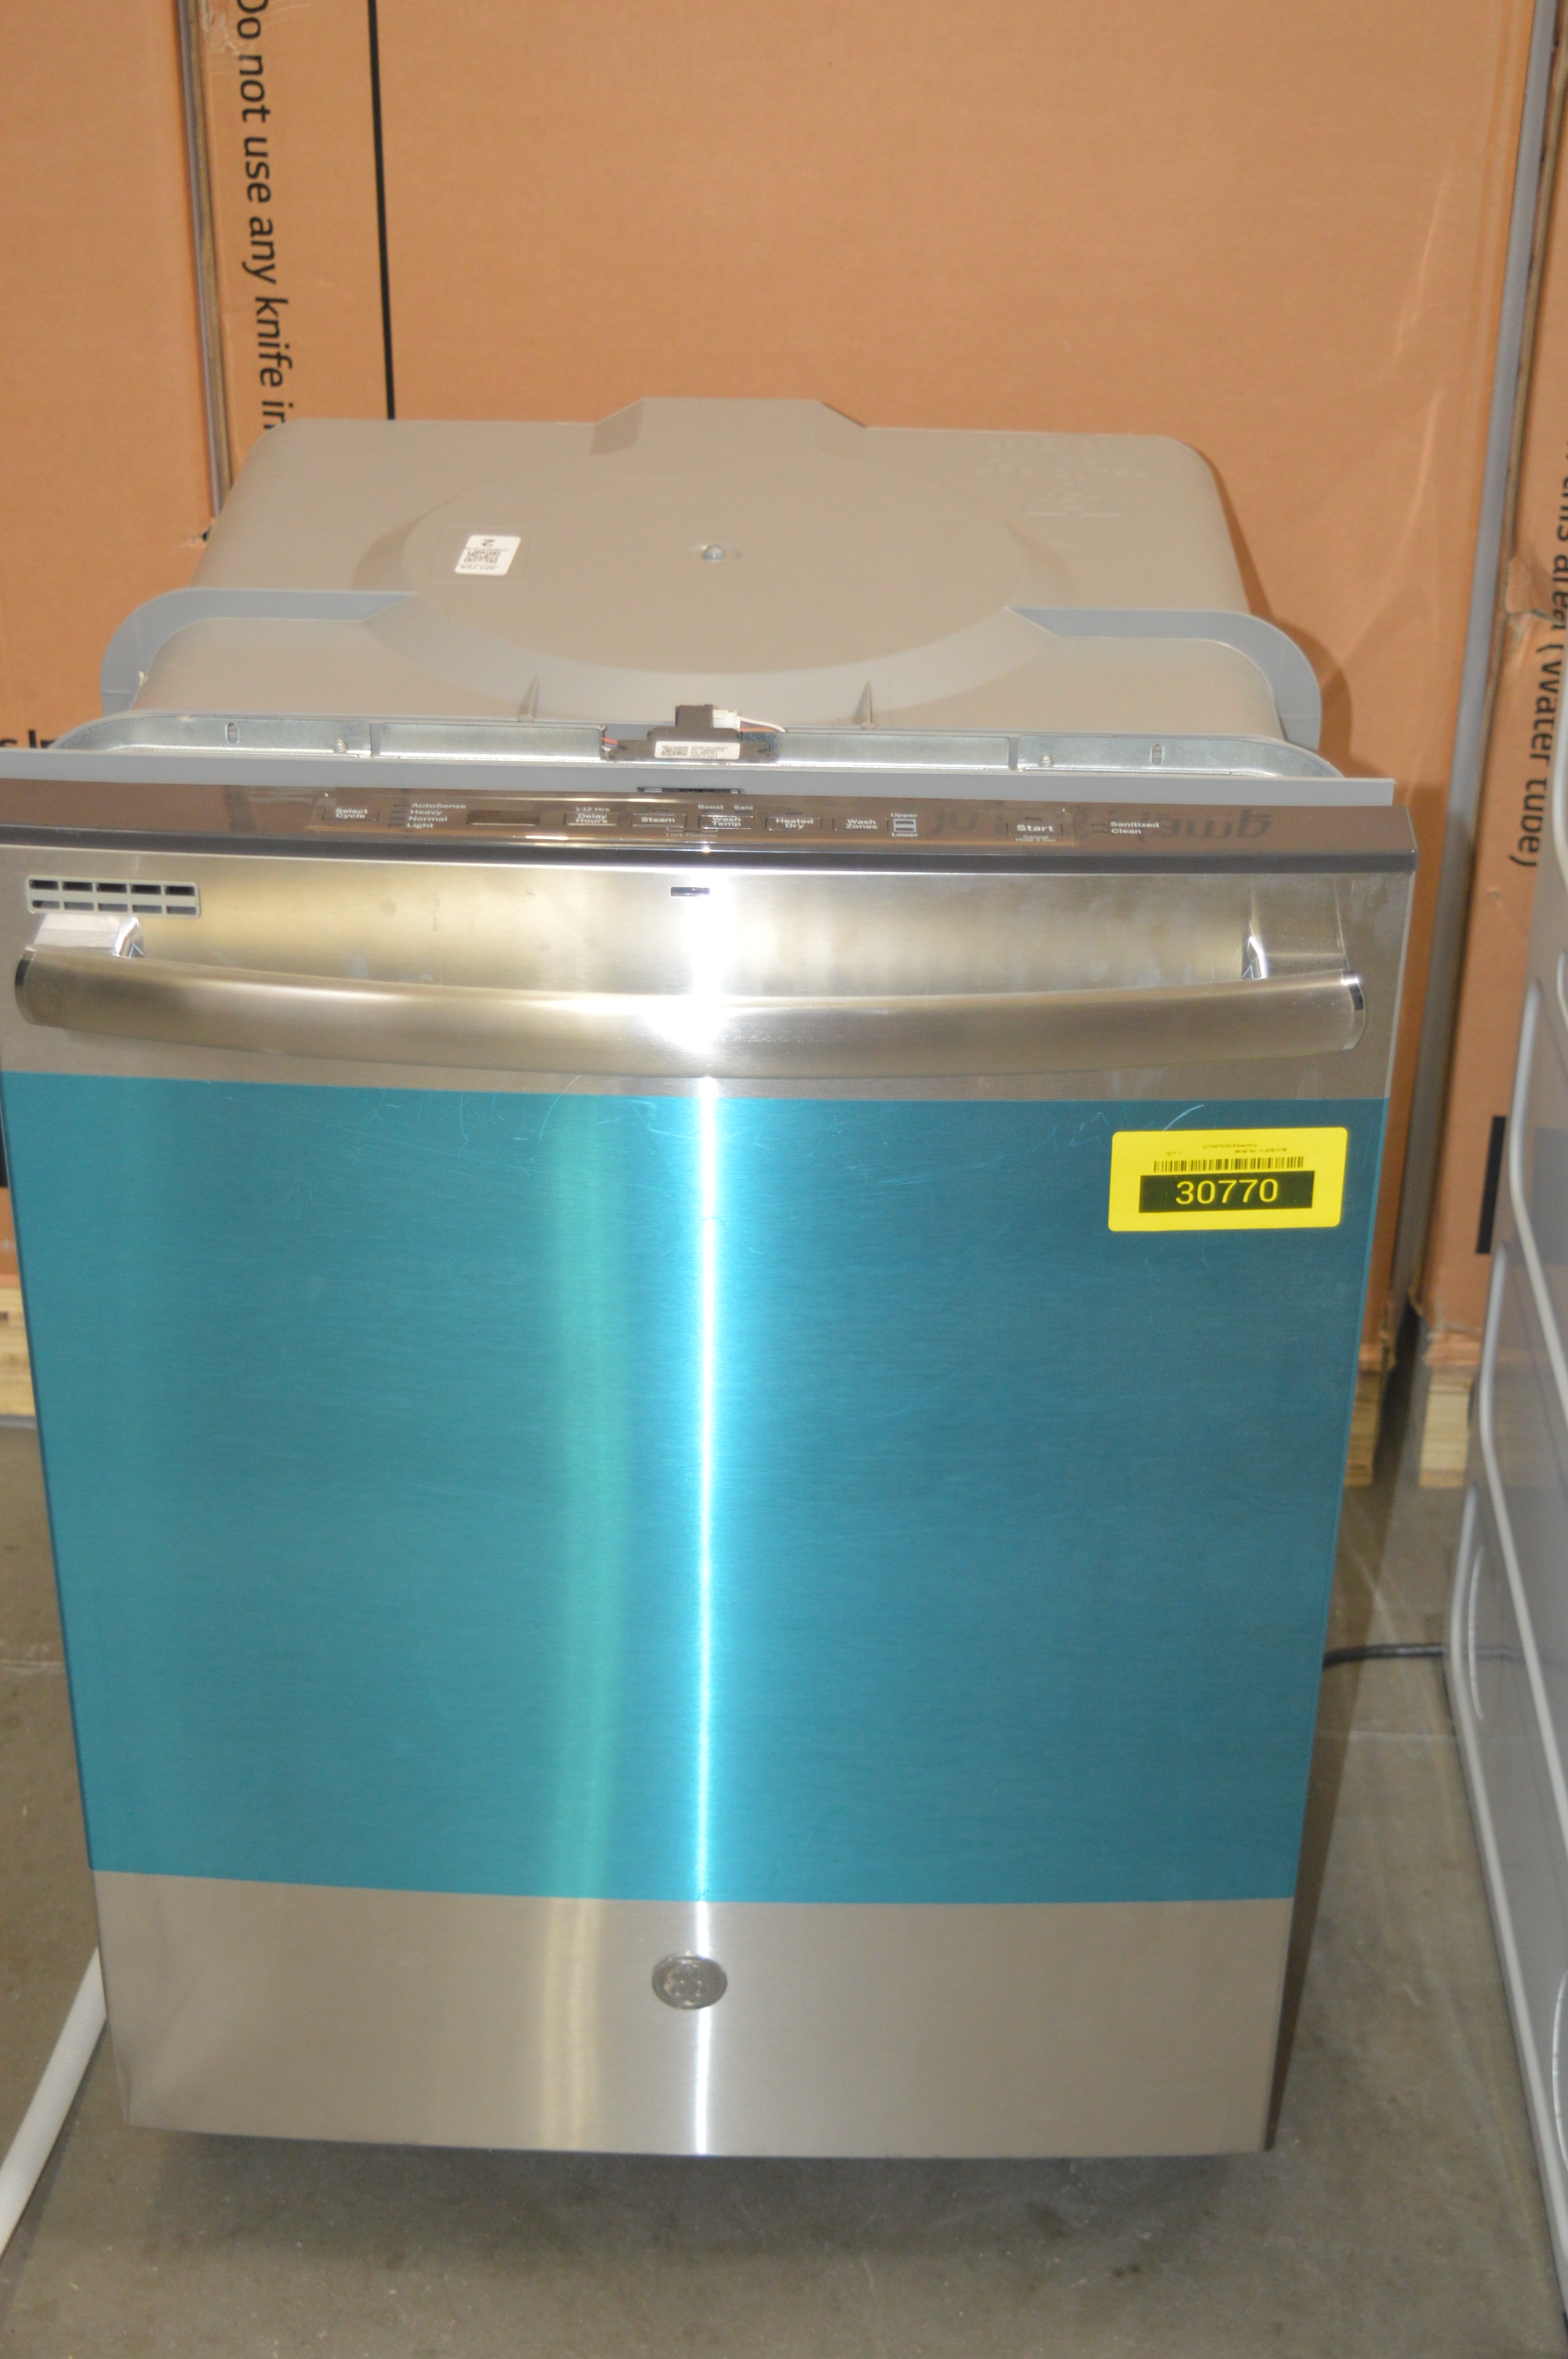 GE GDT545PSJSS Fully Integrated Dishwasher Stainless